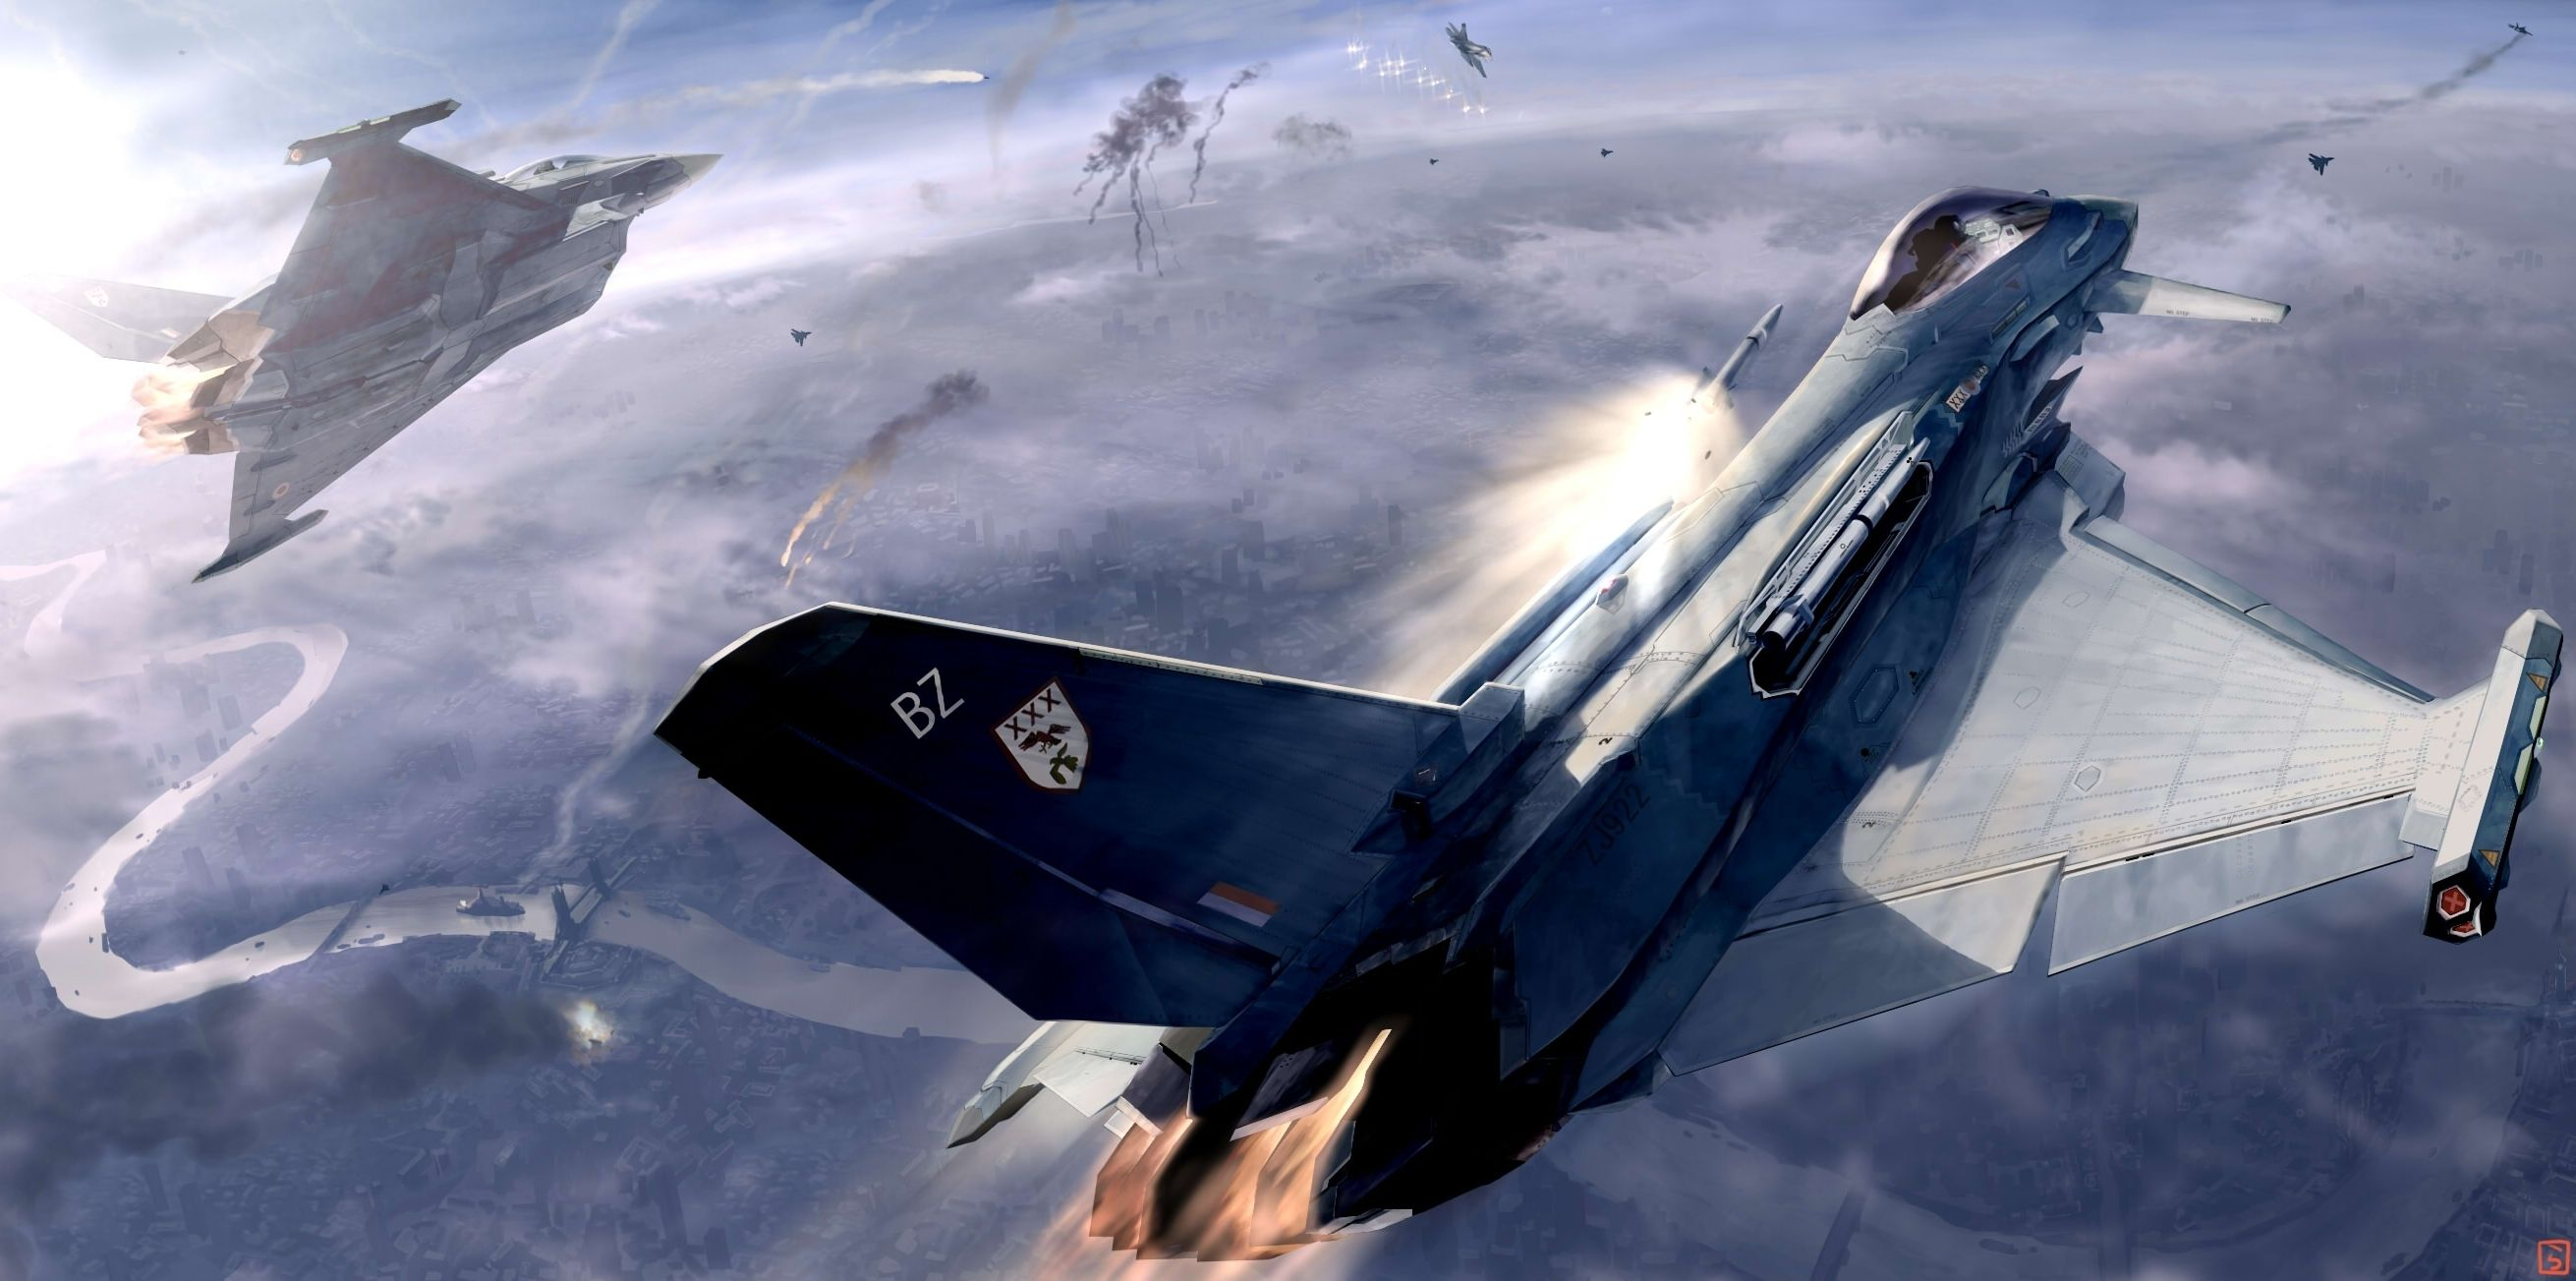 Aerial Dogfight   Fighter Aircraft   Fighter jets, Aviation art